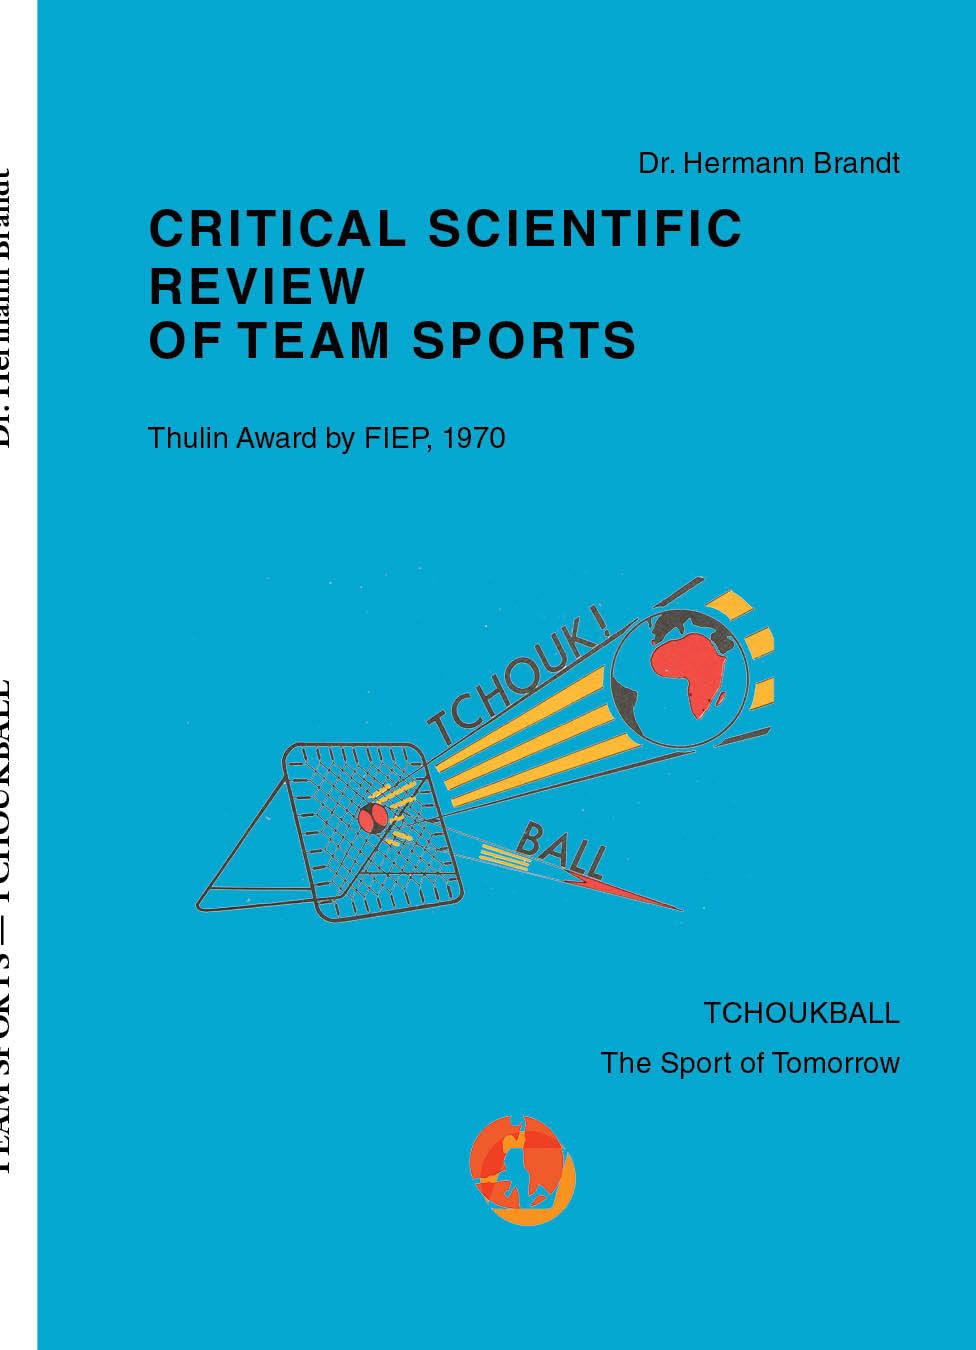 Critical Scientific Review of Team Sports by Dr. Hermann Brandt TB 112